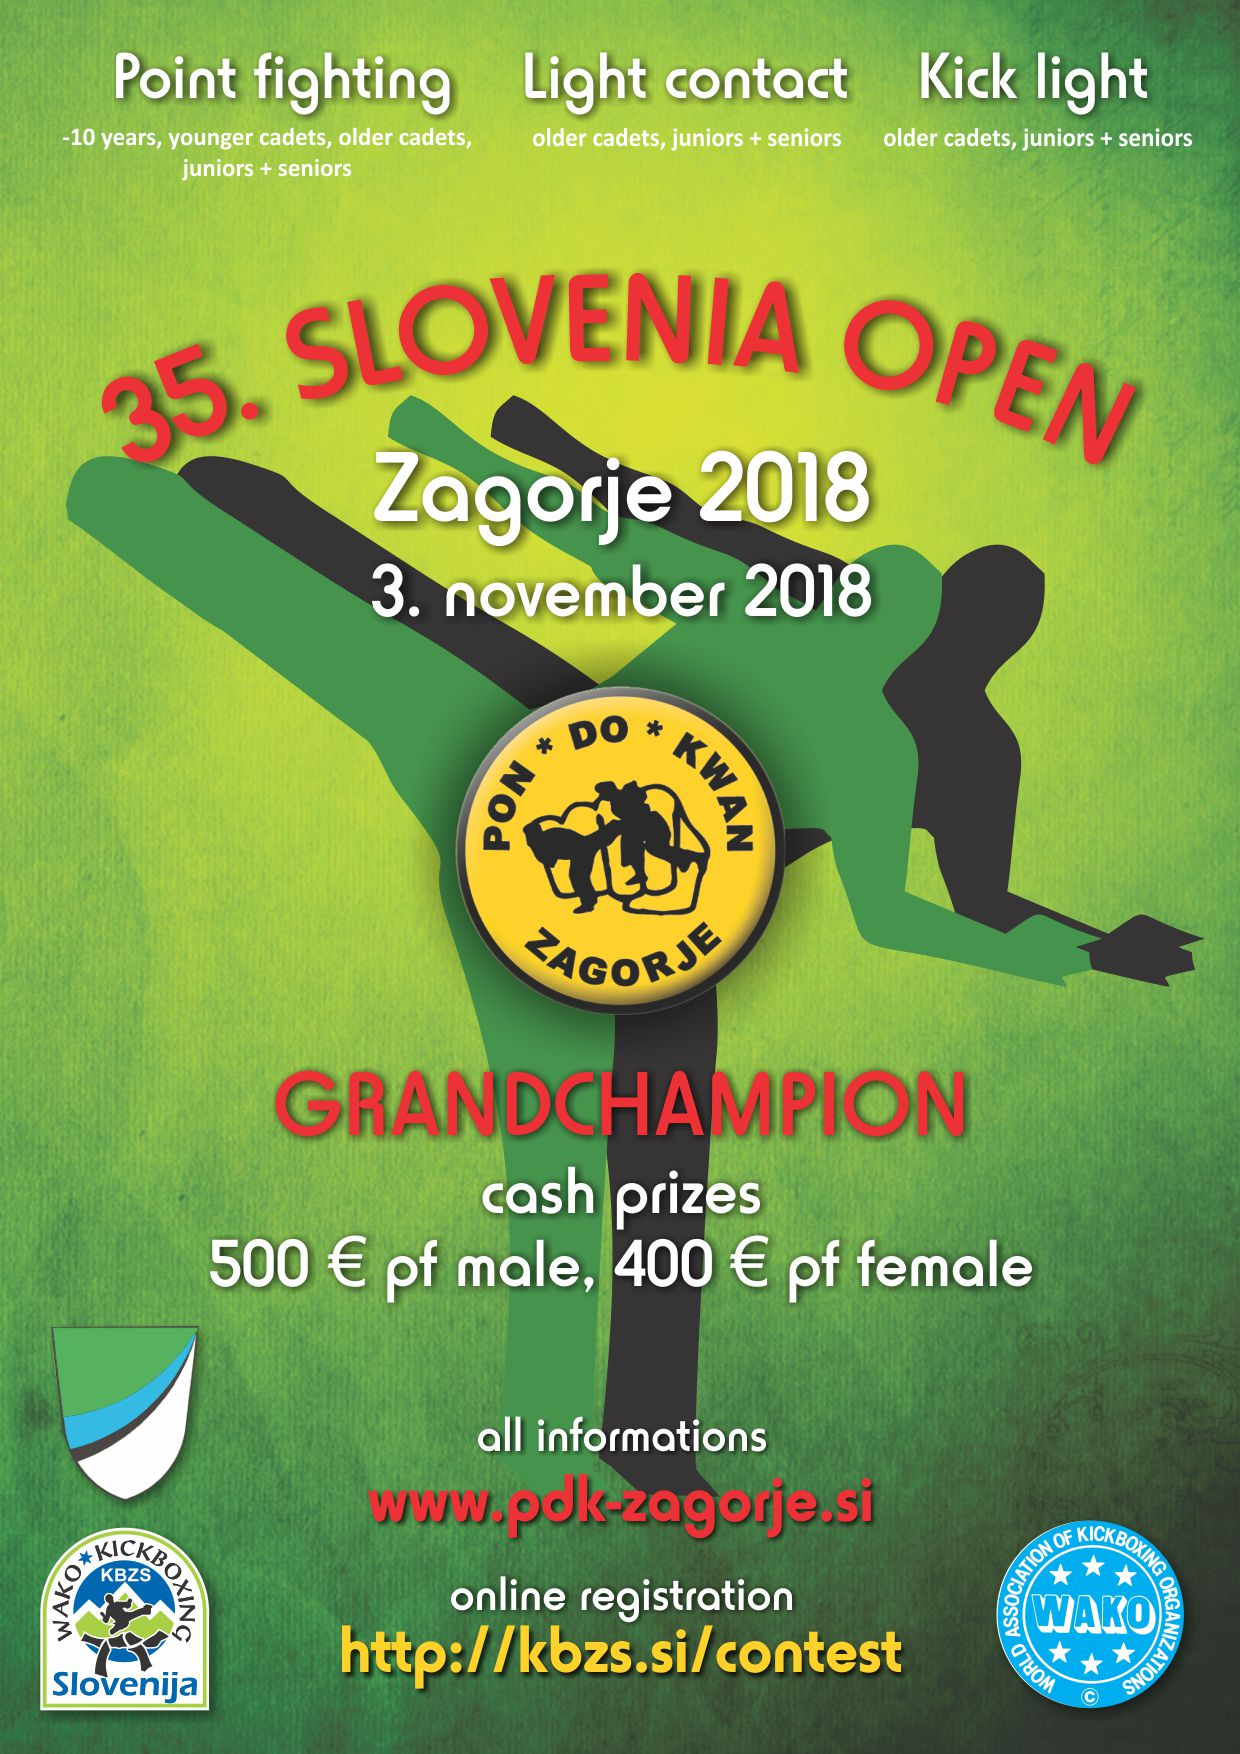 35. Slovenia Open page1